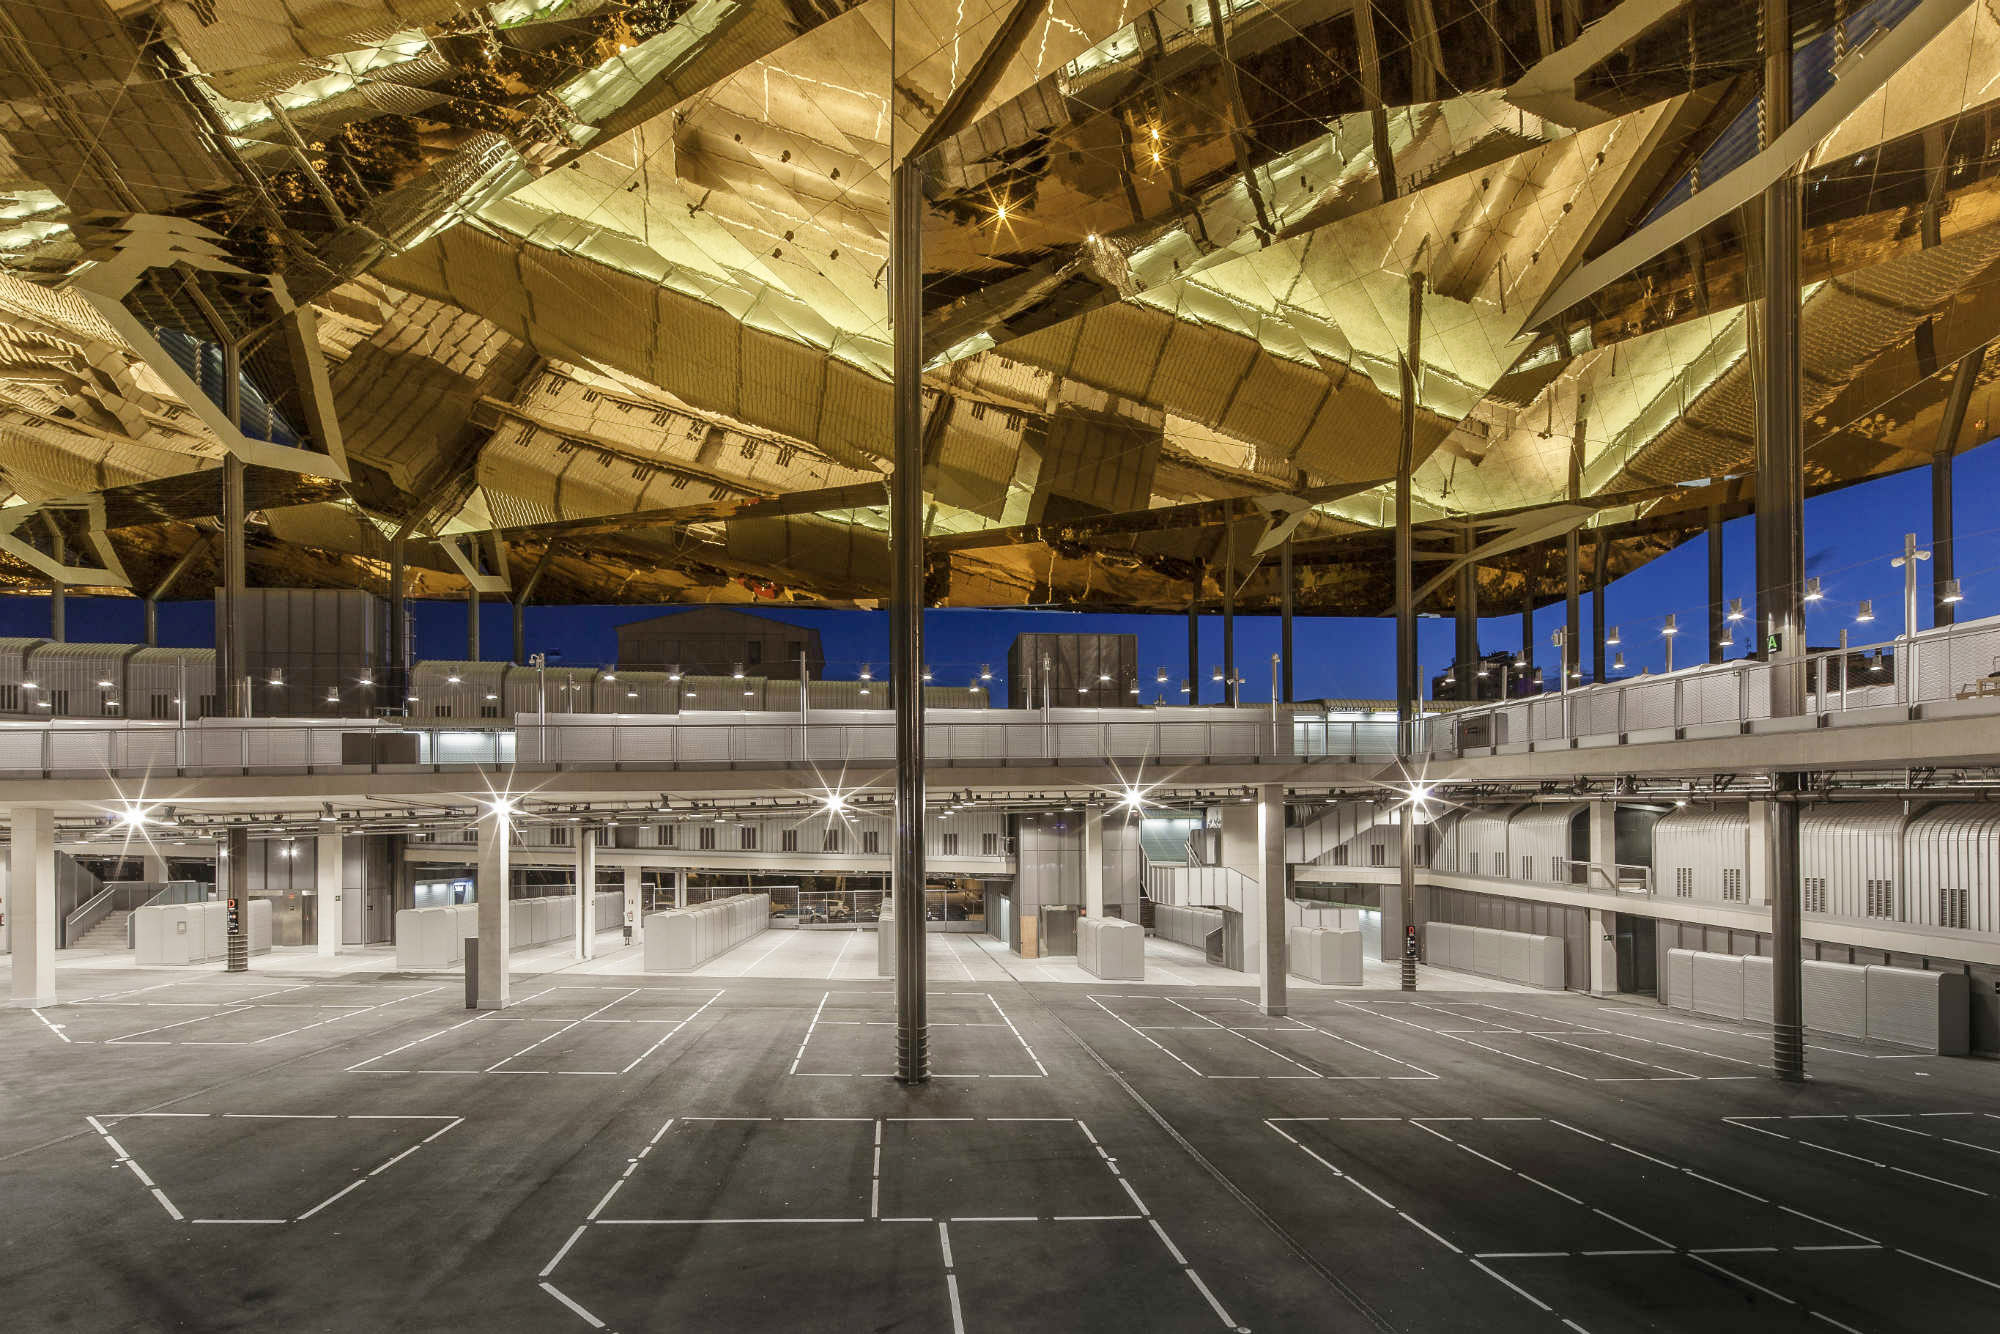 barcelona market, public space,architecture, mirrors, glories, b720 Architetcs, fermin vazquez, rafaelvargas photo